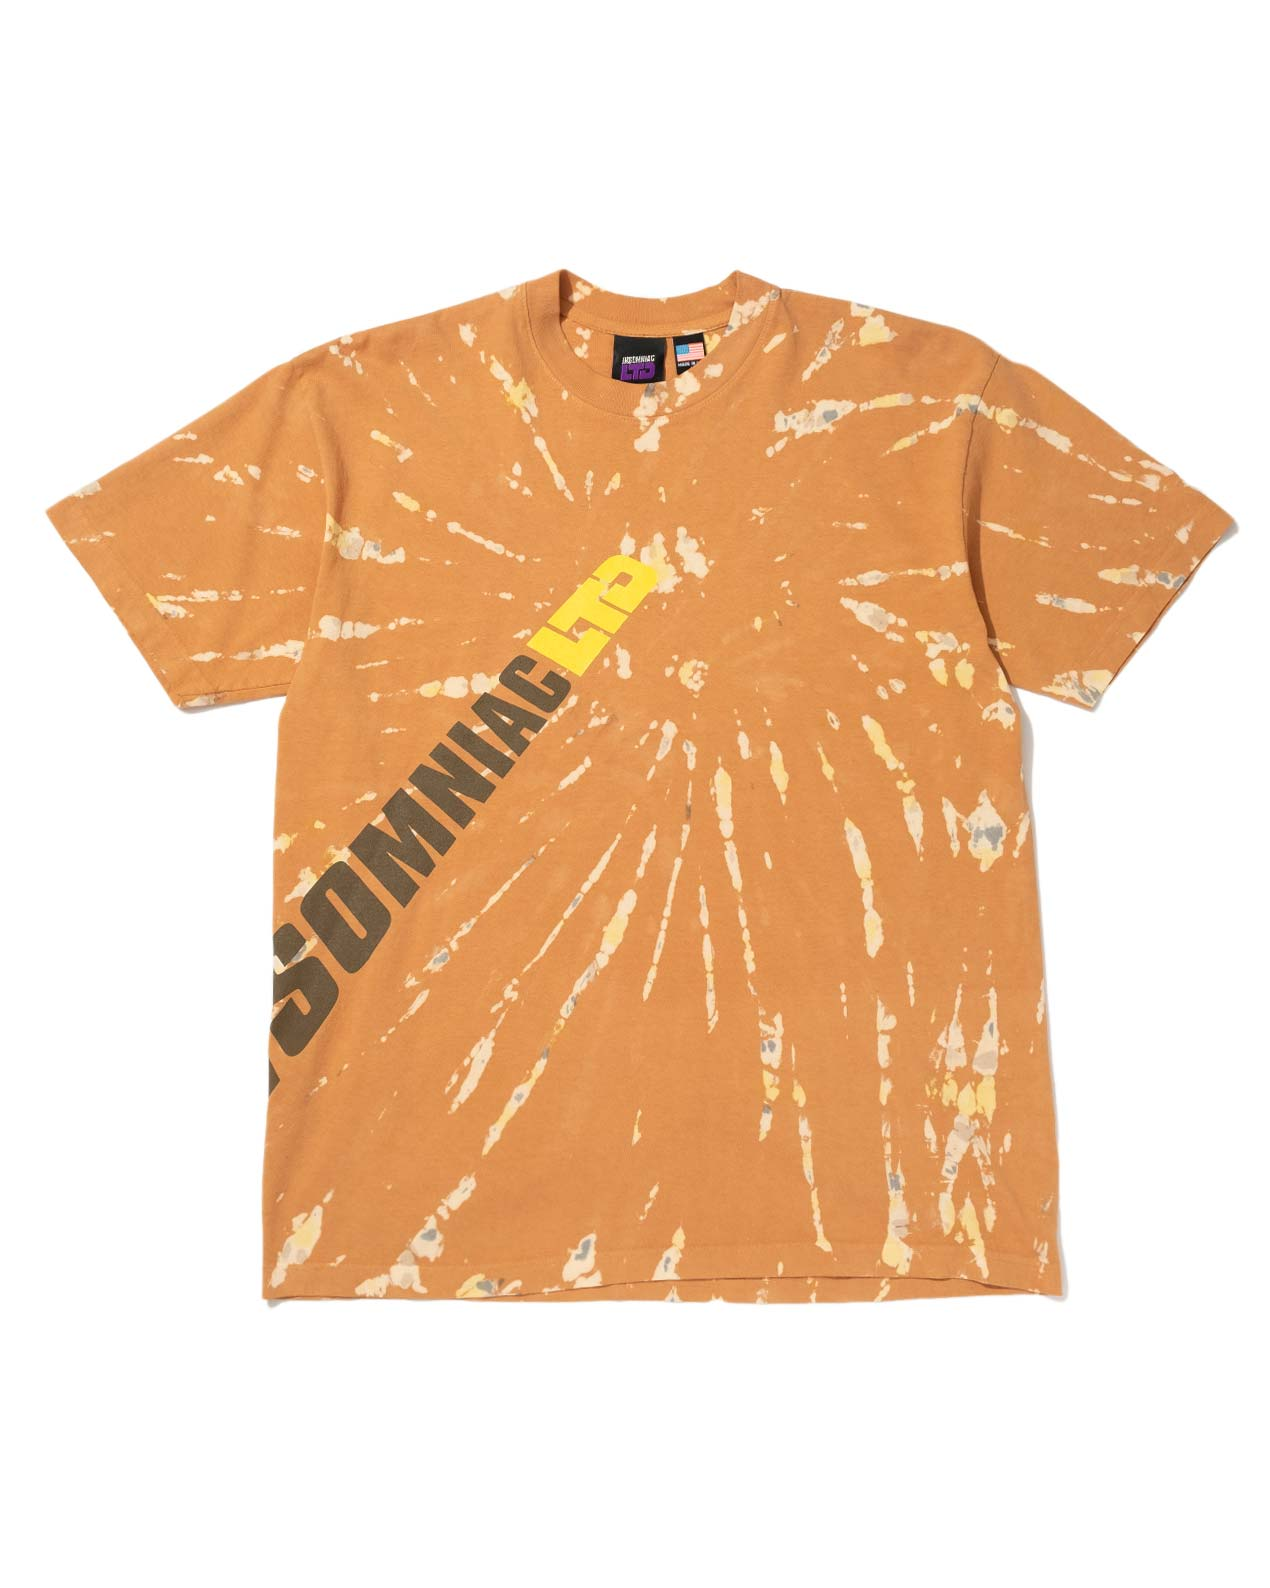 Full BK Blast Tie Dye Tee Brown